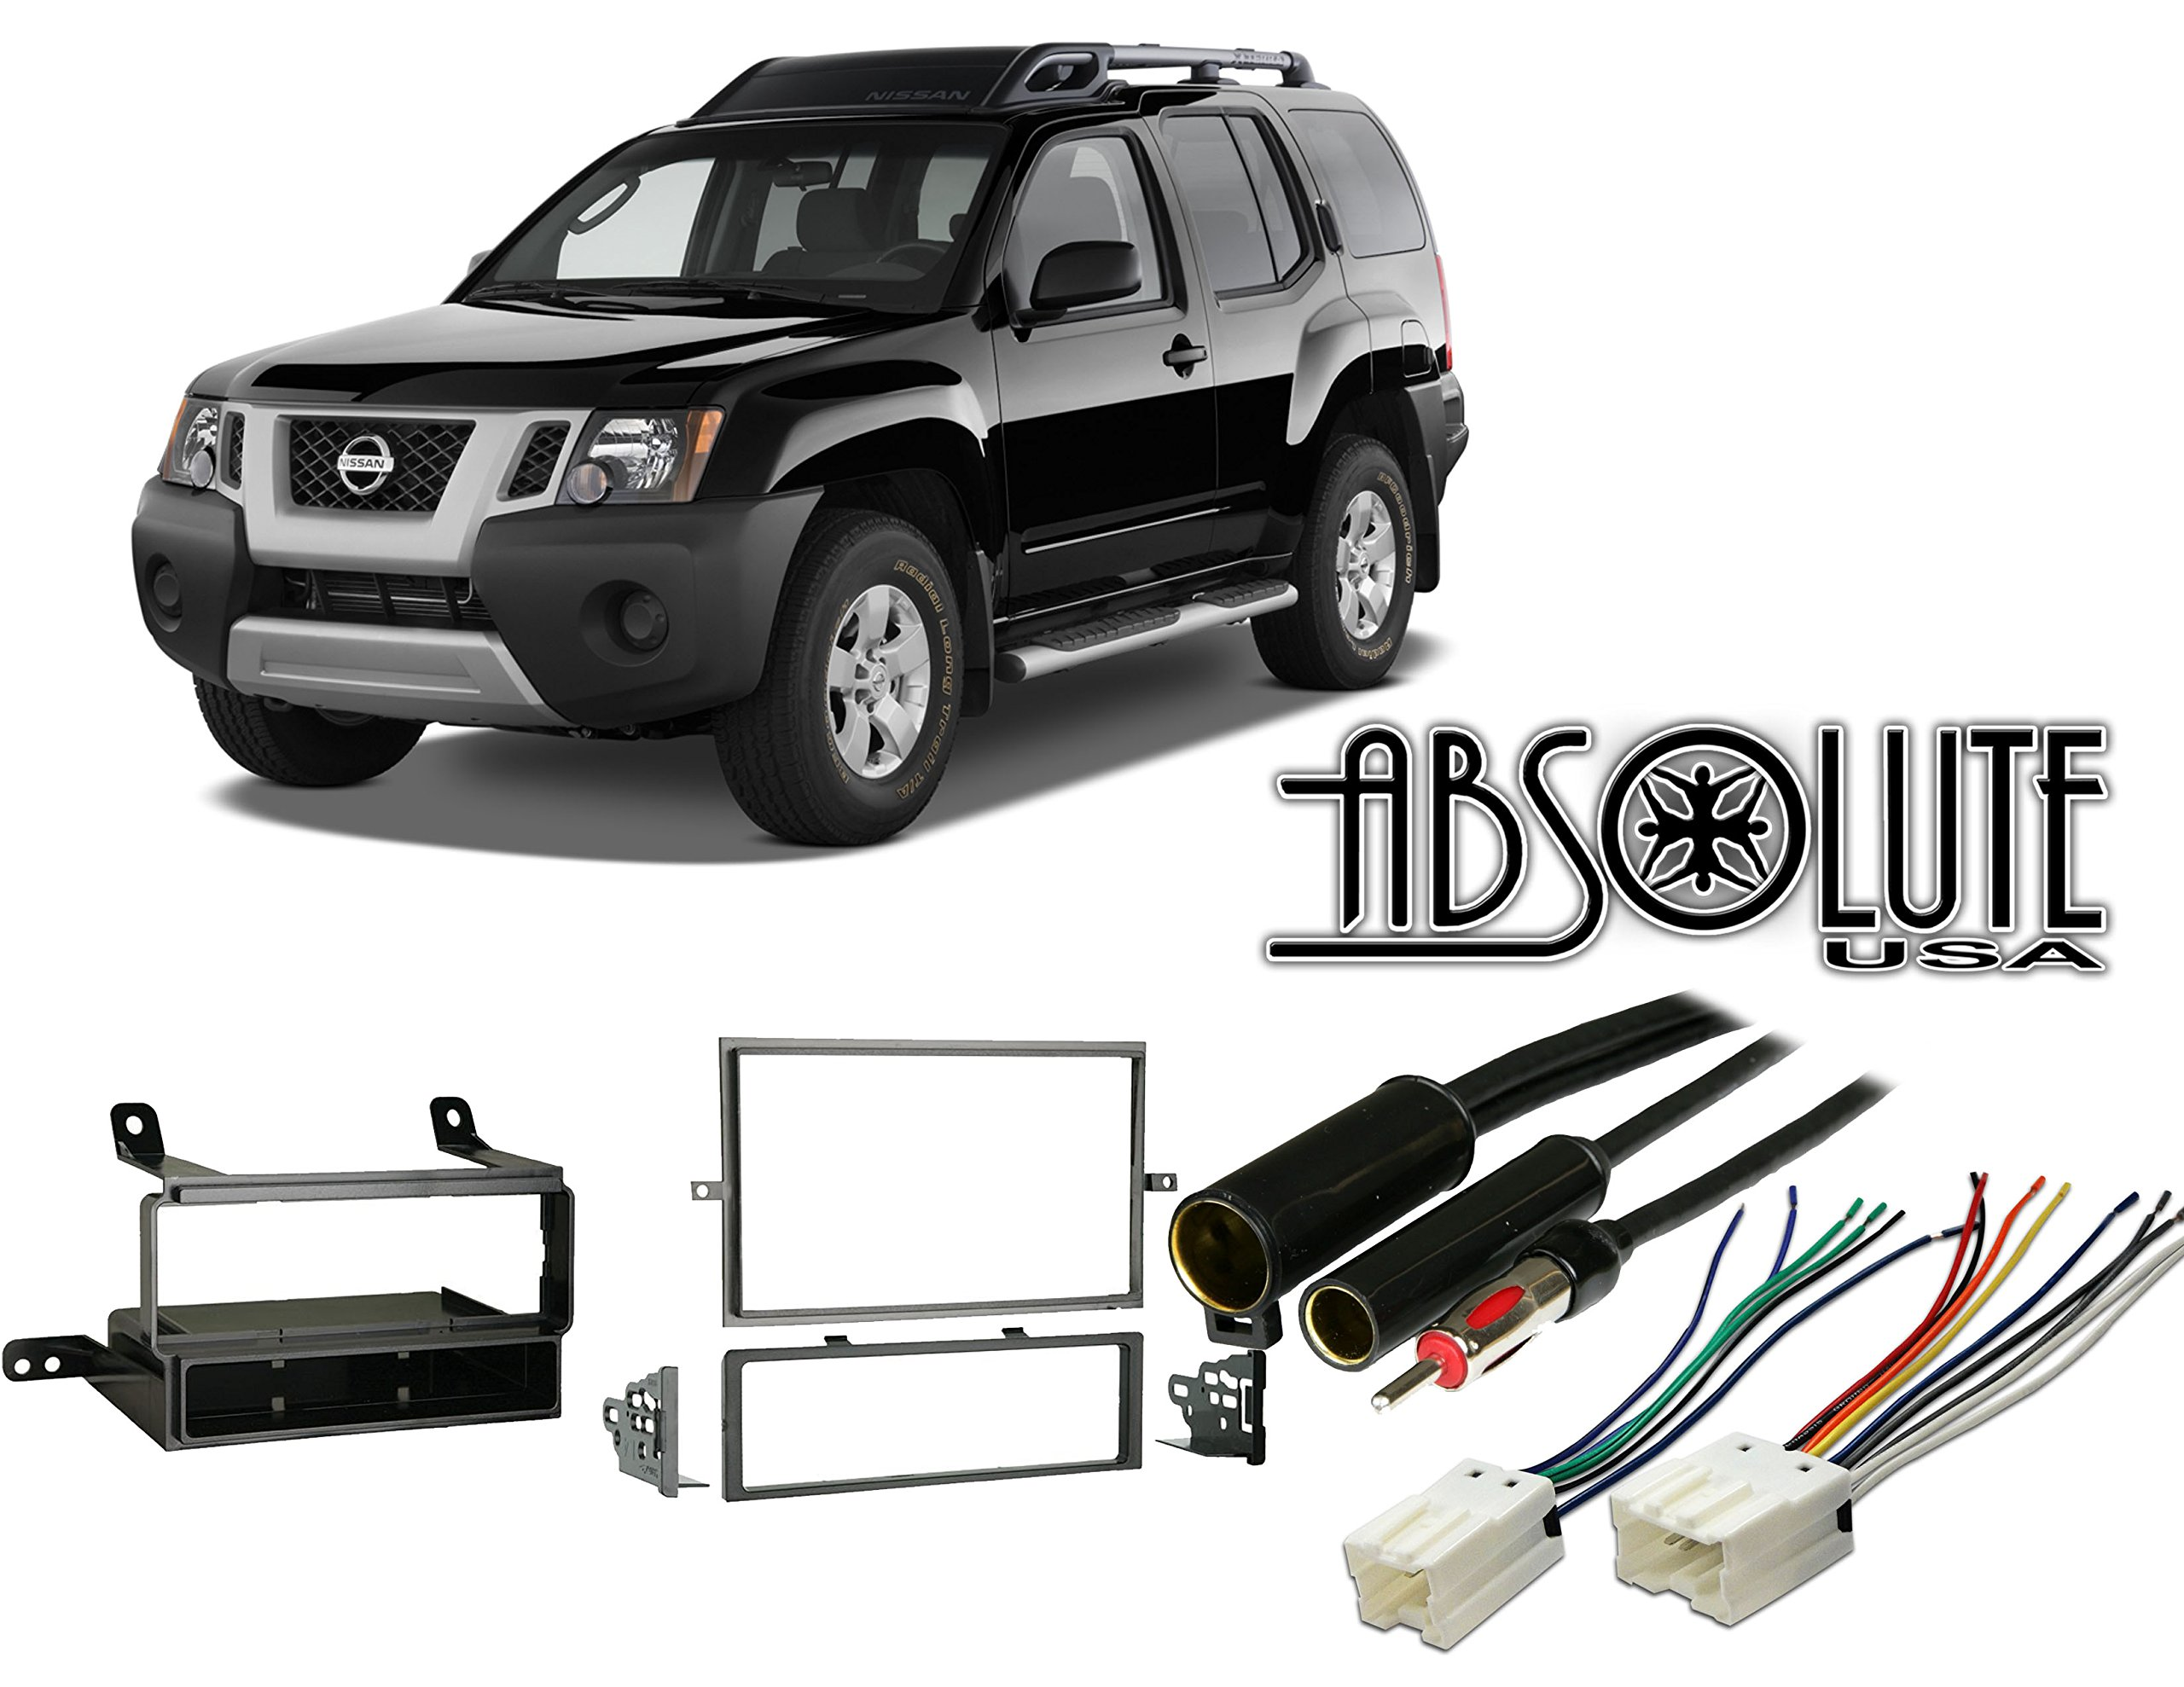 Buy Carxtc Stereo Install Dash Kit Nissan Sentra 04 05 2004 2005 Frontier Factory Wiring Absolute Radiokitpkg11 Fits Xterra 2008 Multi Din Harness Radio